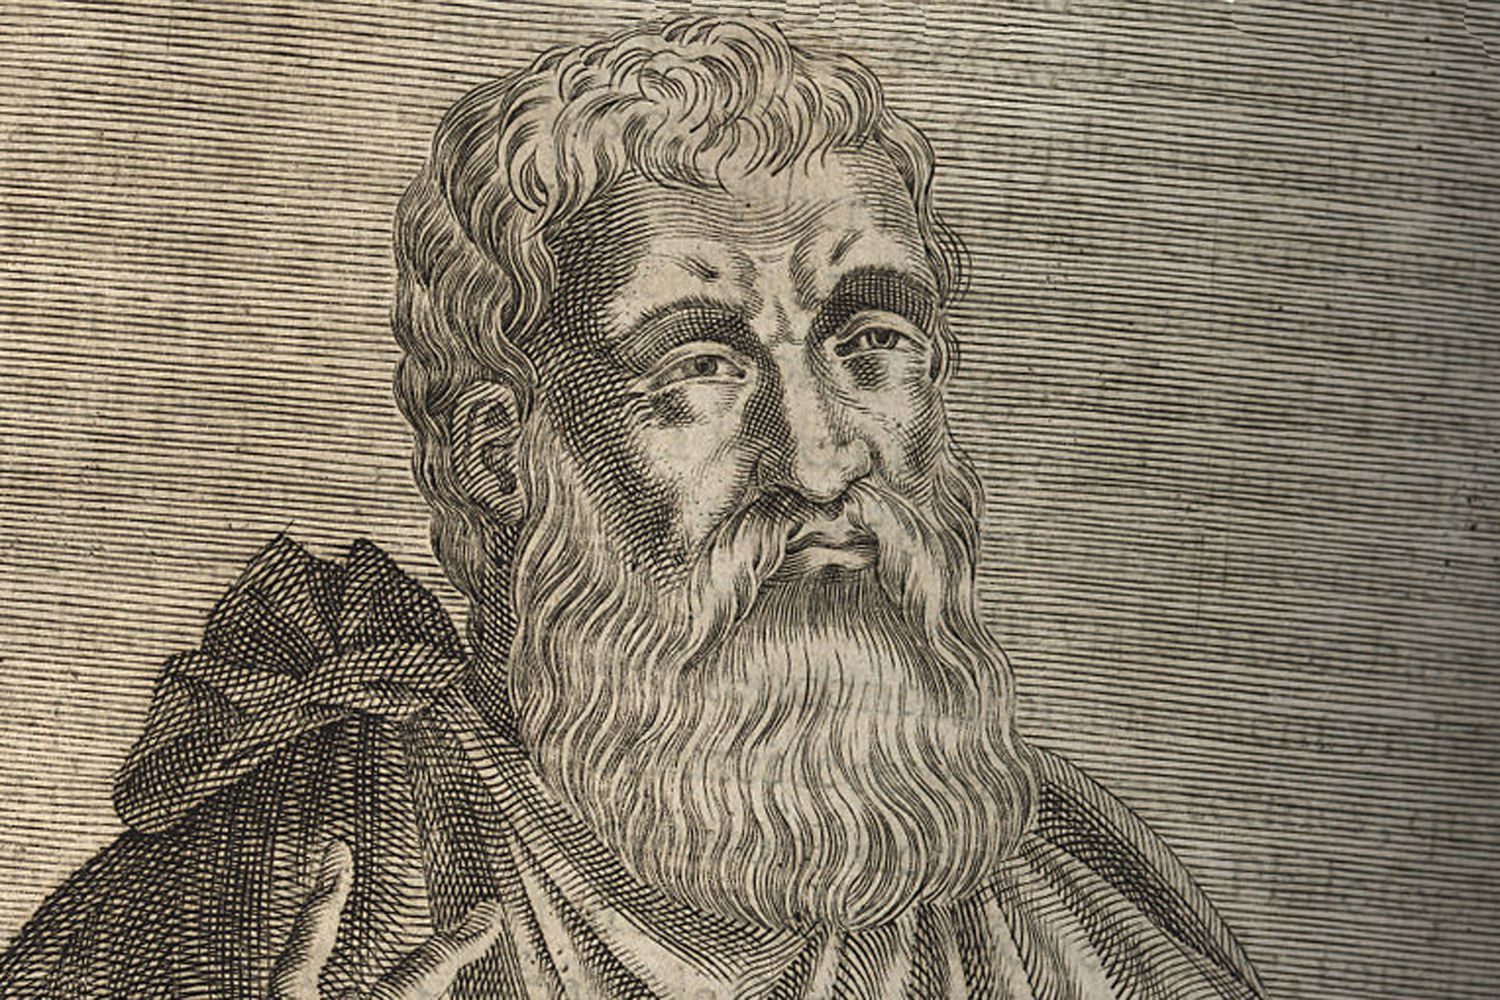 Biography of Justin Martyr